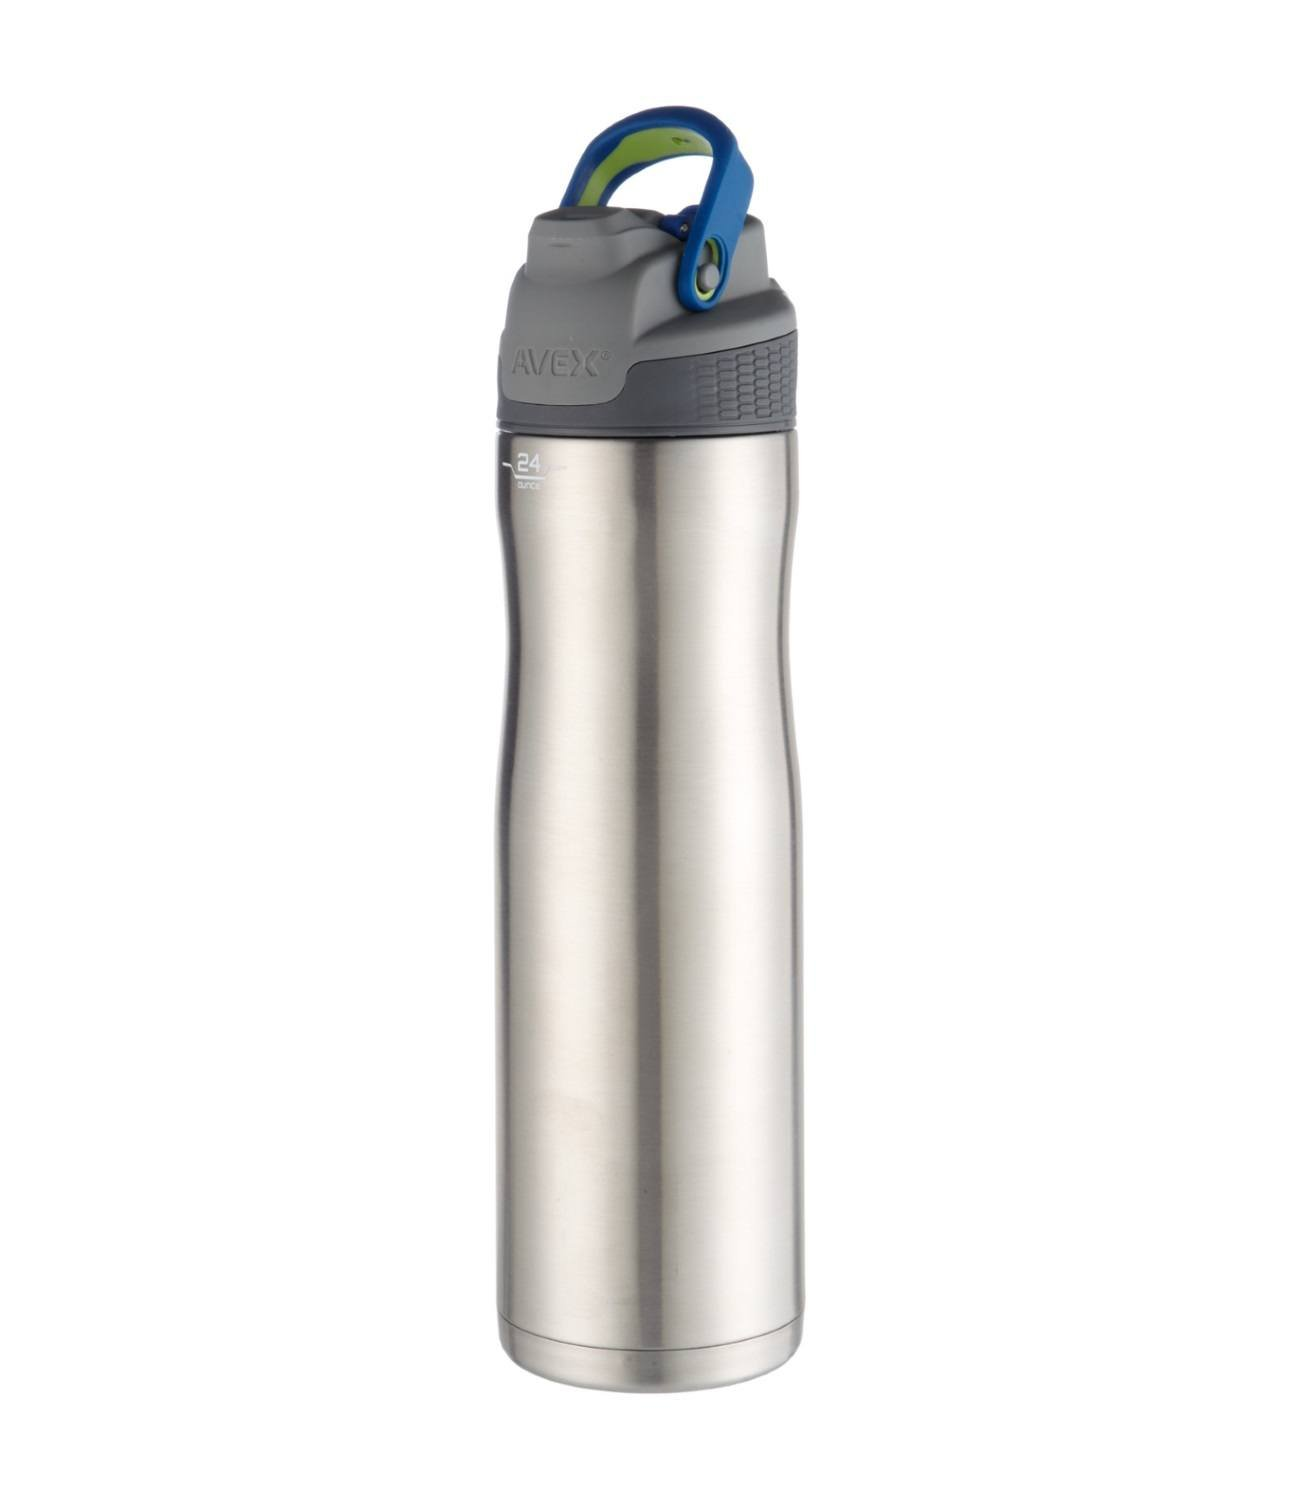 35 Best Top Rated Bpa Free Stainless Steel Reusable